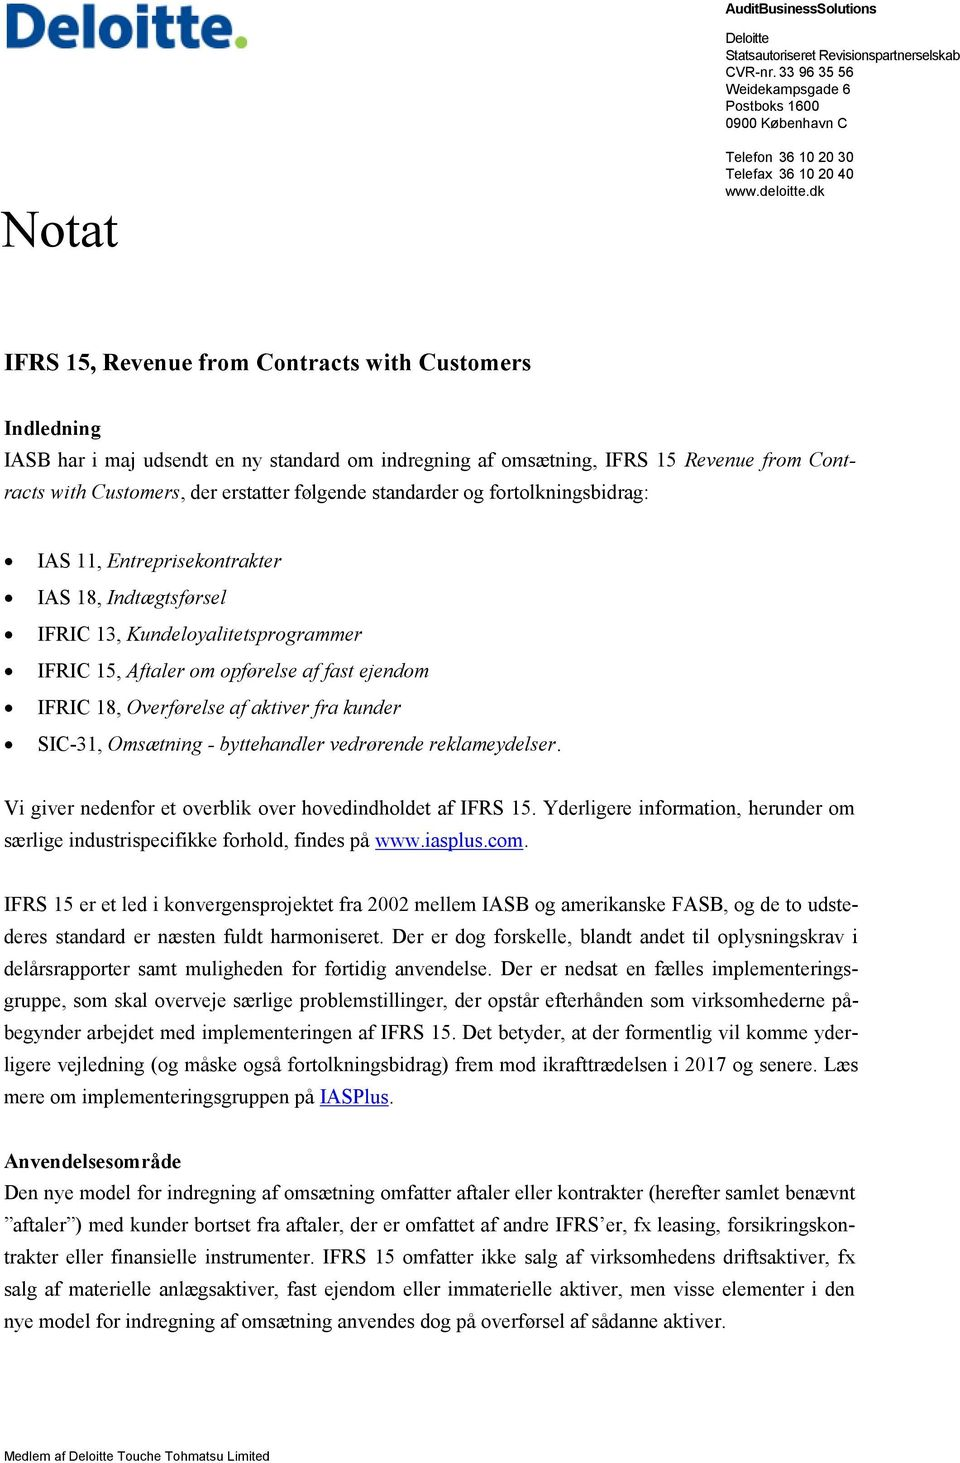 dk IFRS 15, Revenue from Contracts with Customers Indledning IASB har i maj udsendt en ny standard om indregning af omsætning, IFRS 15 Revenue from Contracts with Customers, der erstatter følgende